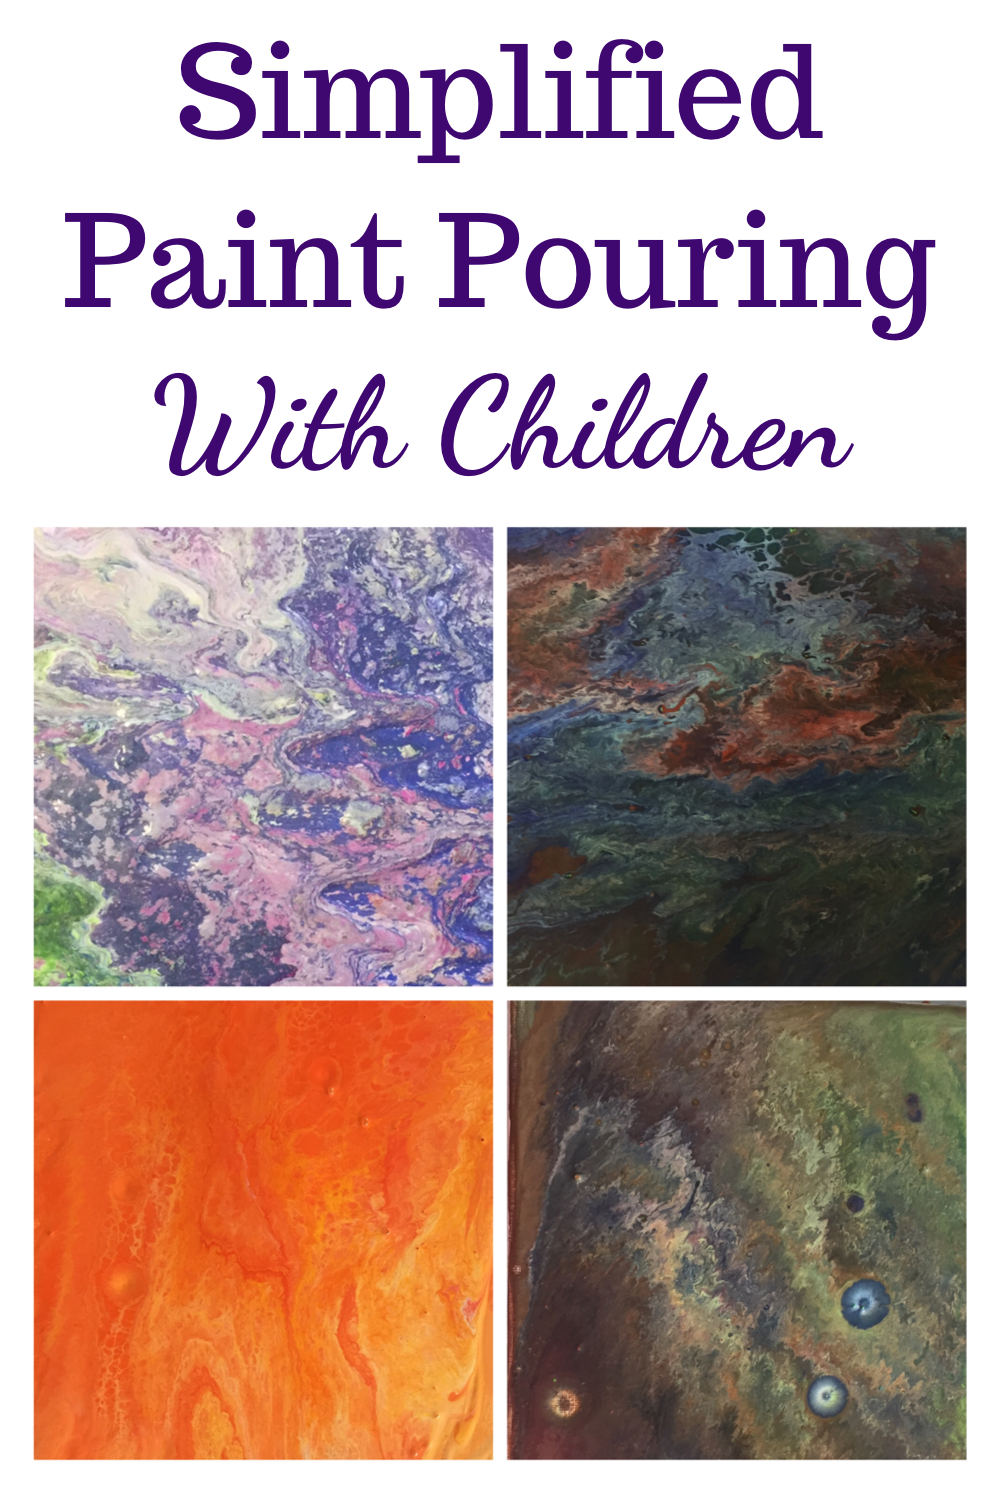 Simplified paint pouring with children